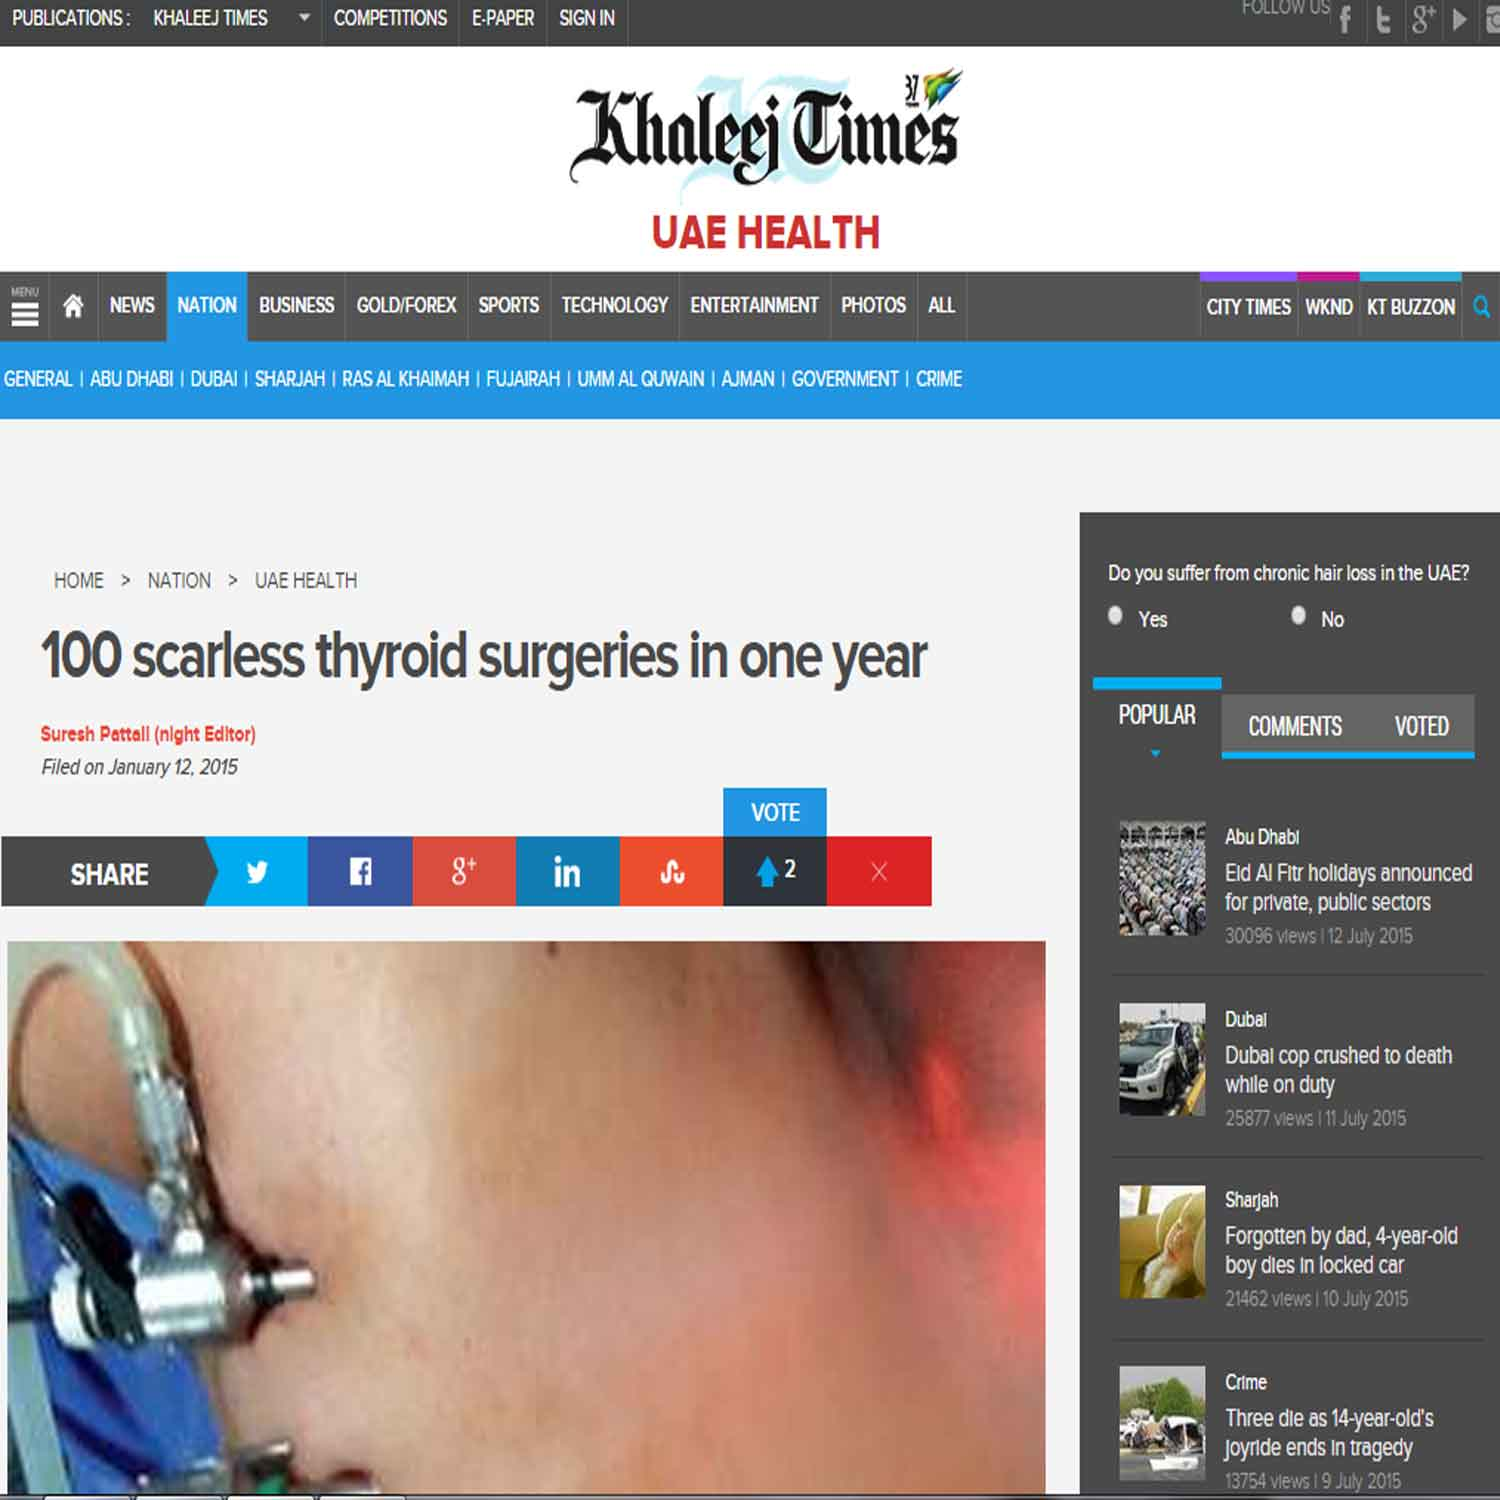 100 scarless thyroid surgeries in one year.